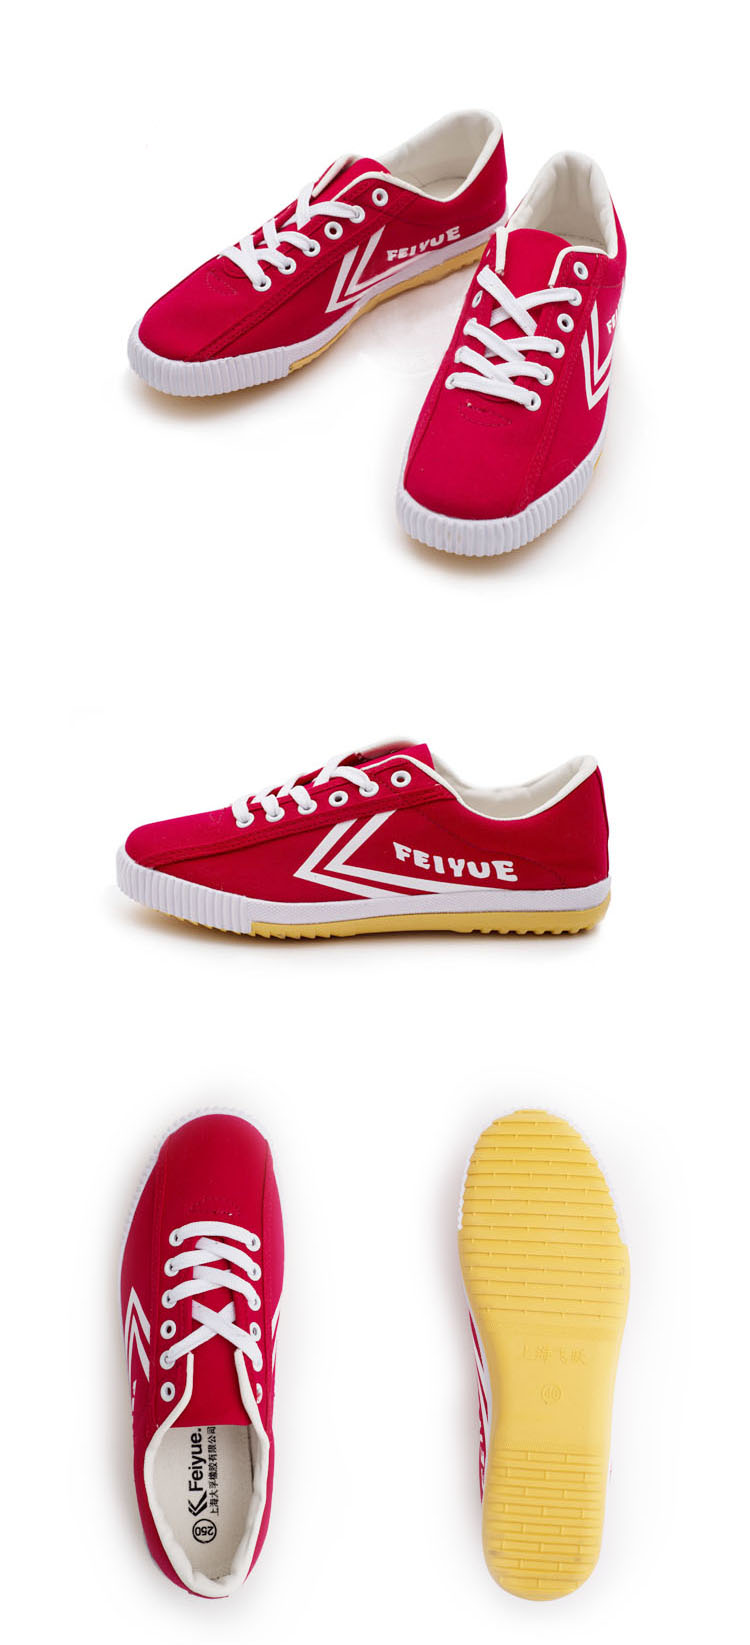 Feiyue Shoes